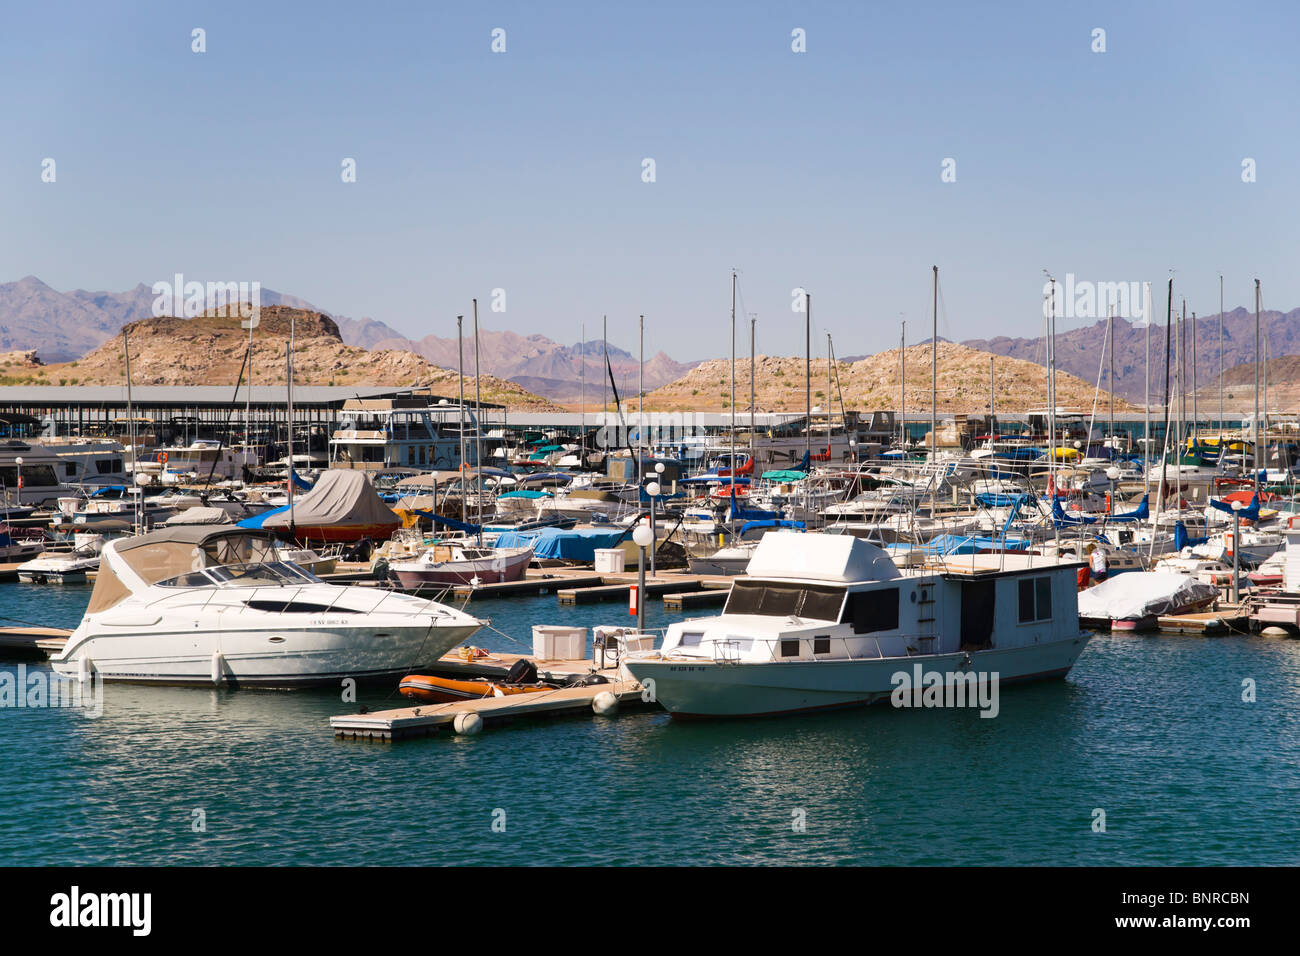 USA Nevada - Lake Mead recreation. The marina near the Hoover Dam south shore. Stock Photo